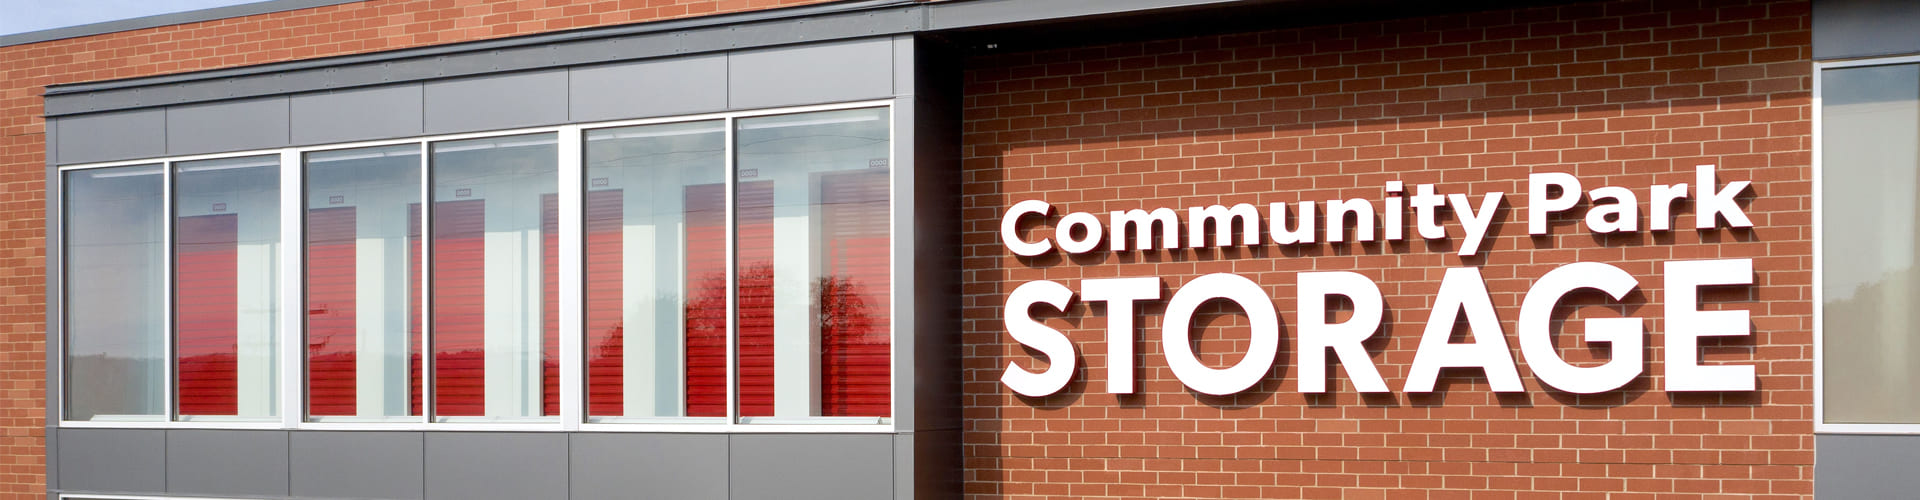 Community Park Storage in Cranberry Township PA